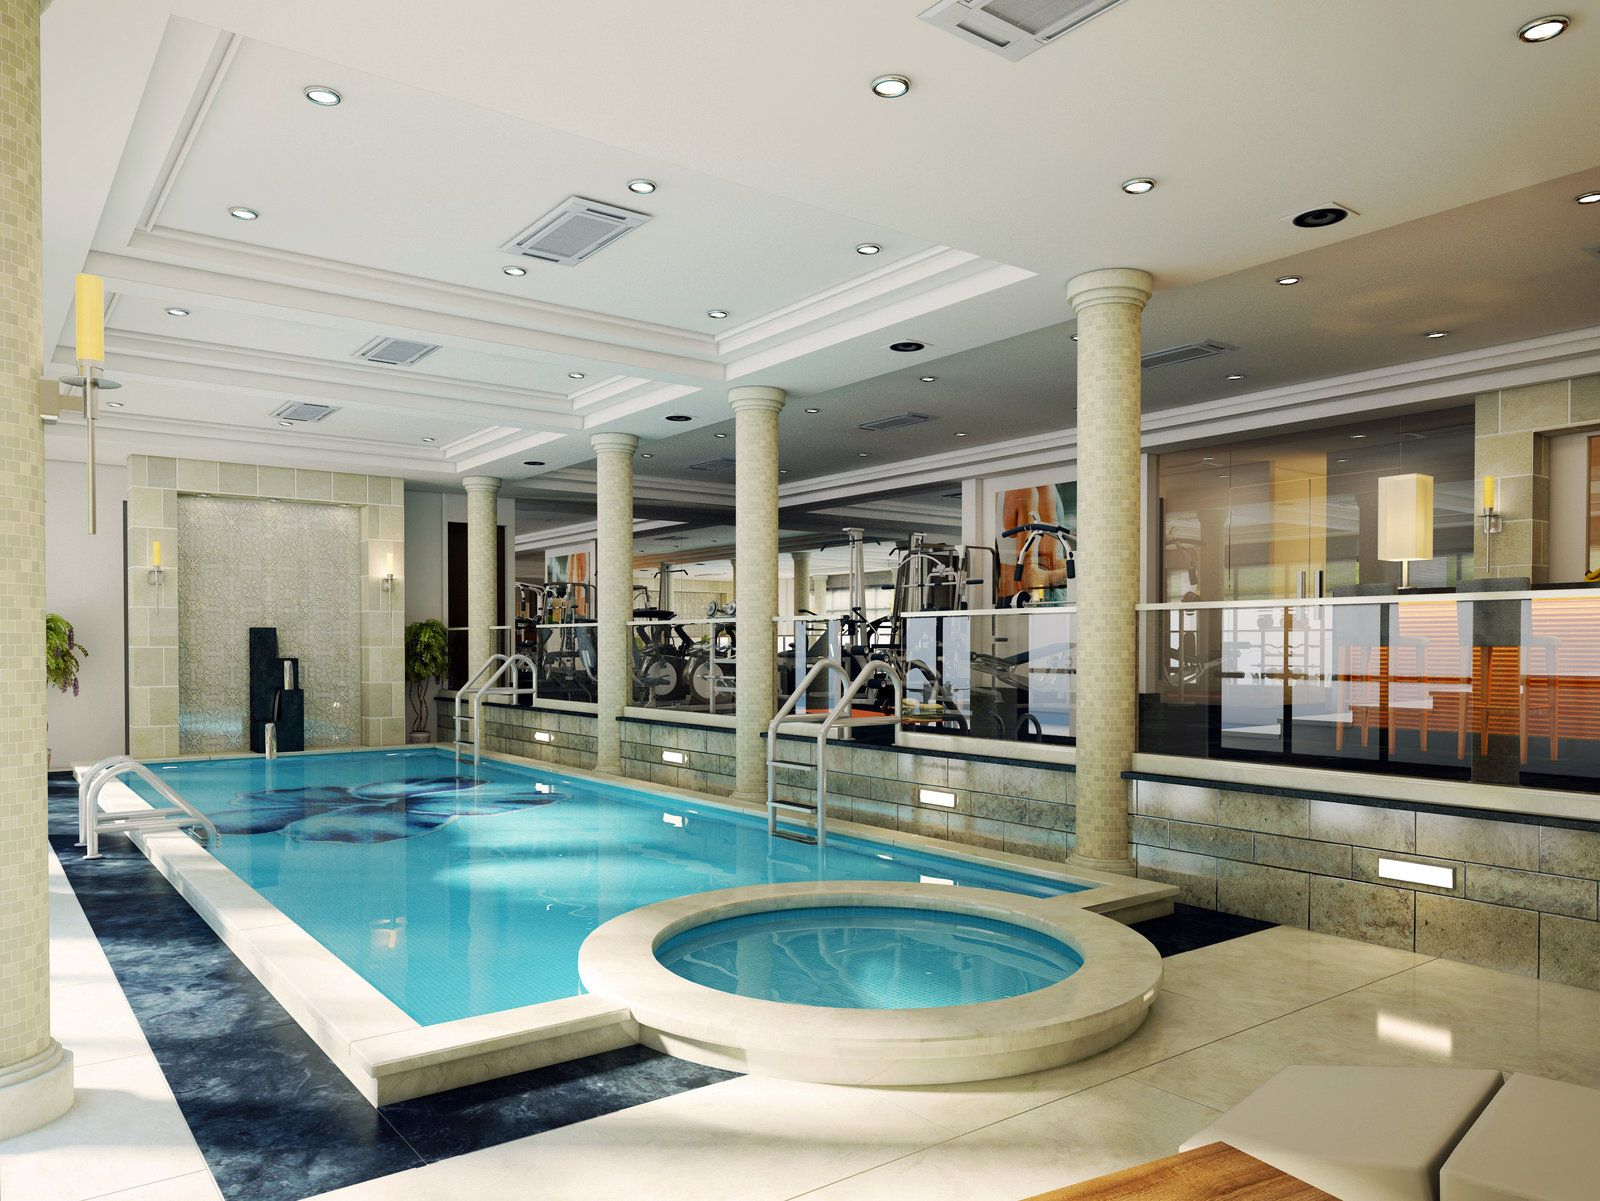 Basement pool workout room hot tub dream house for Swimming pool room ideas